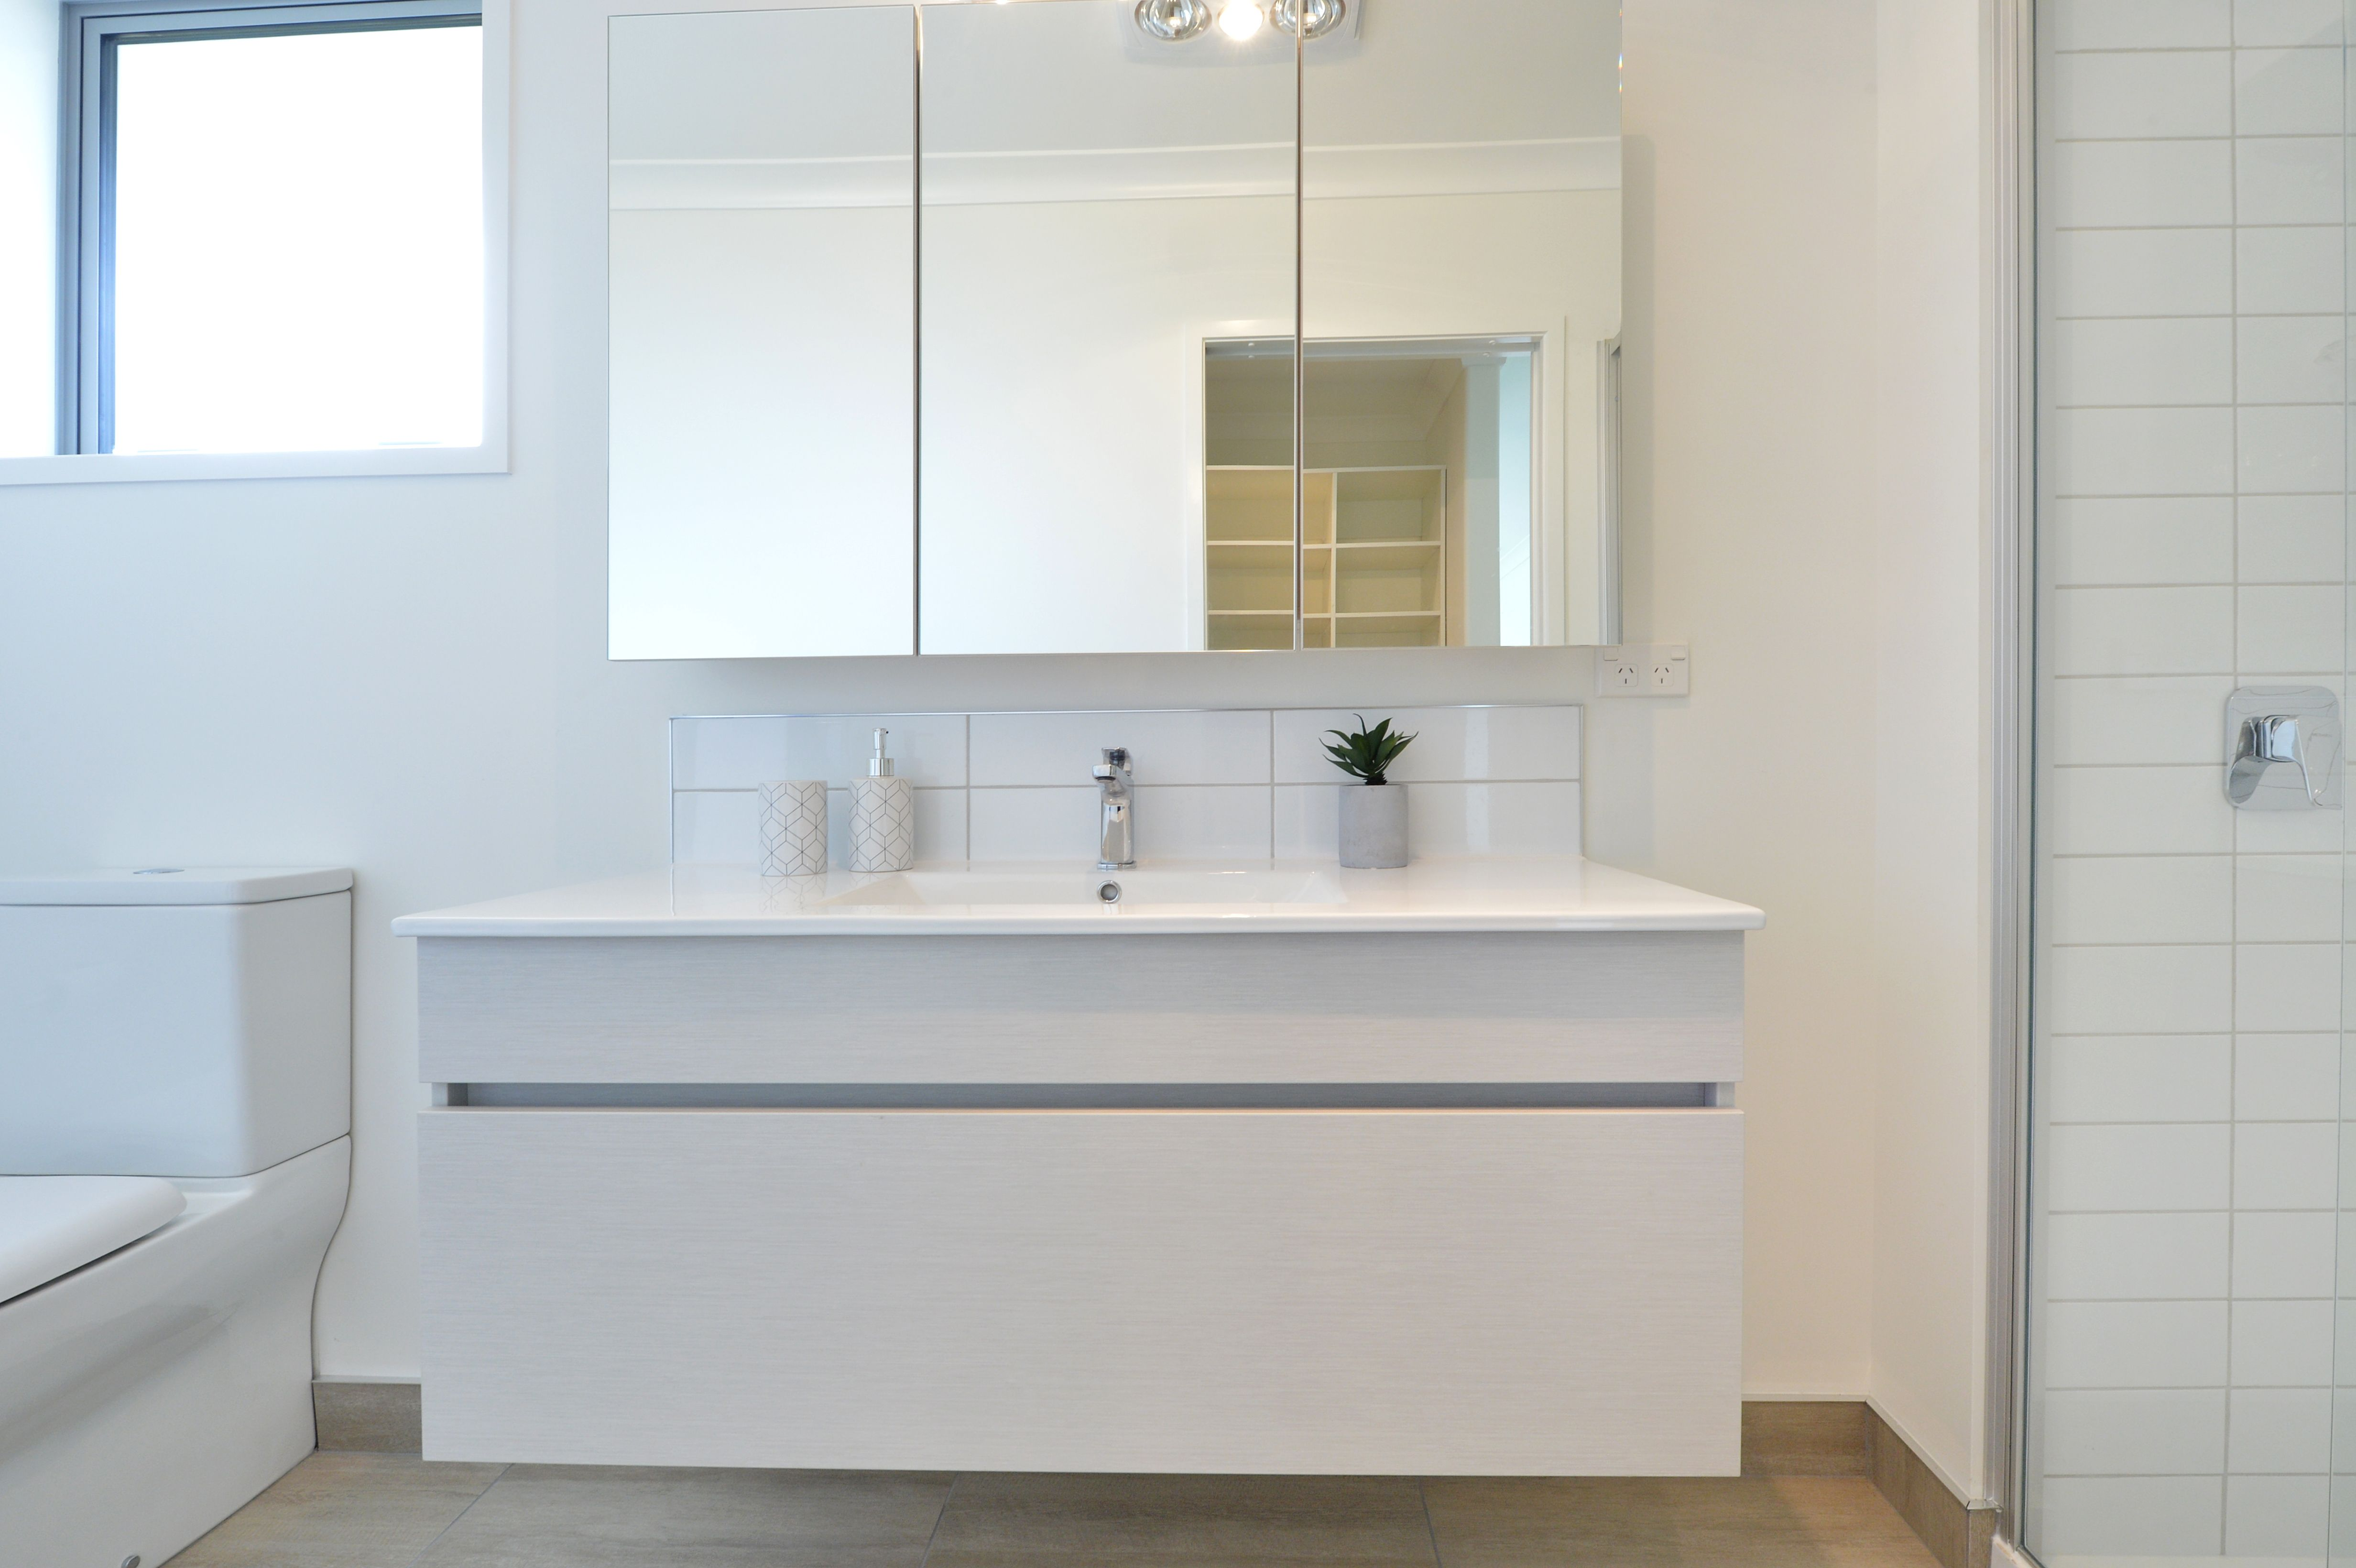 Sumner Wall Hung Vanity And Beveled Edge From Clearlite